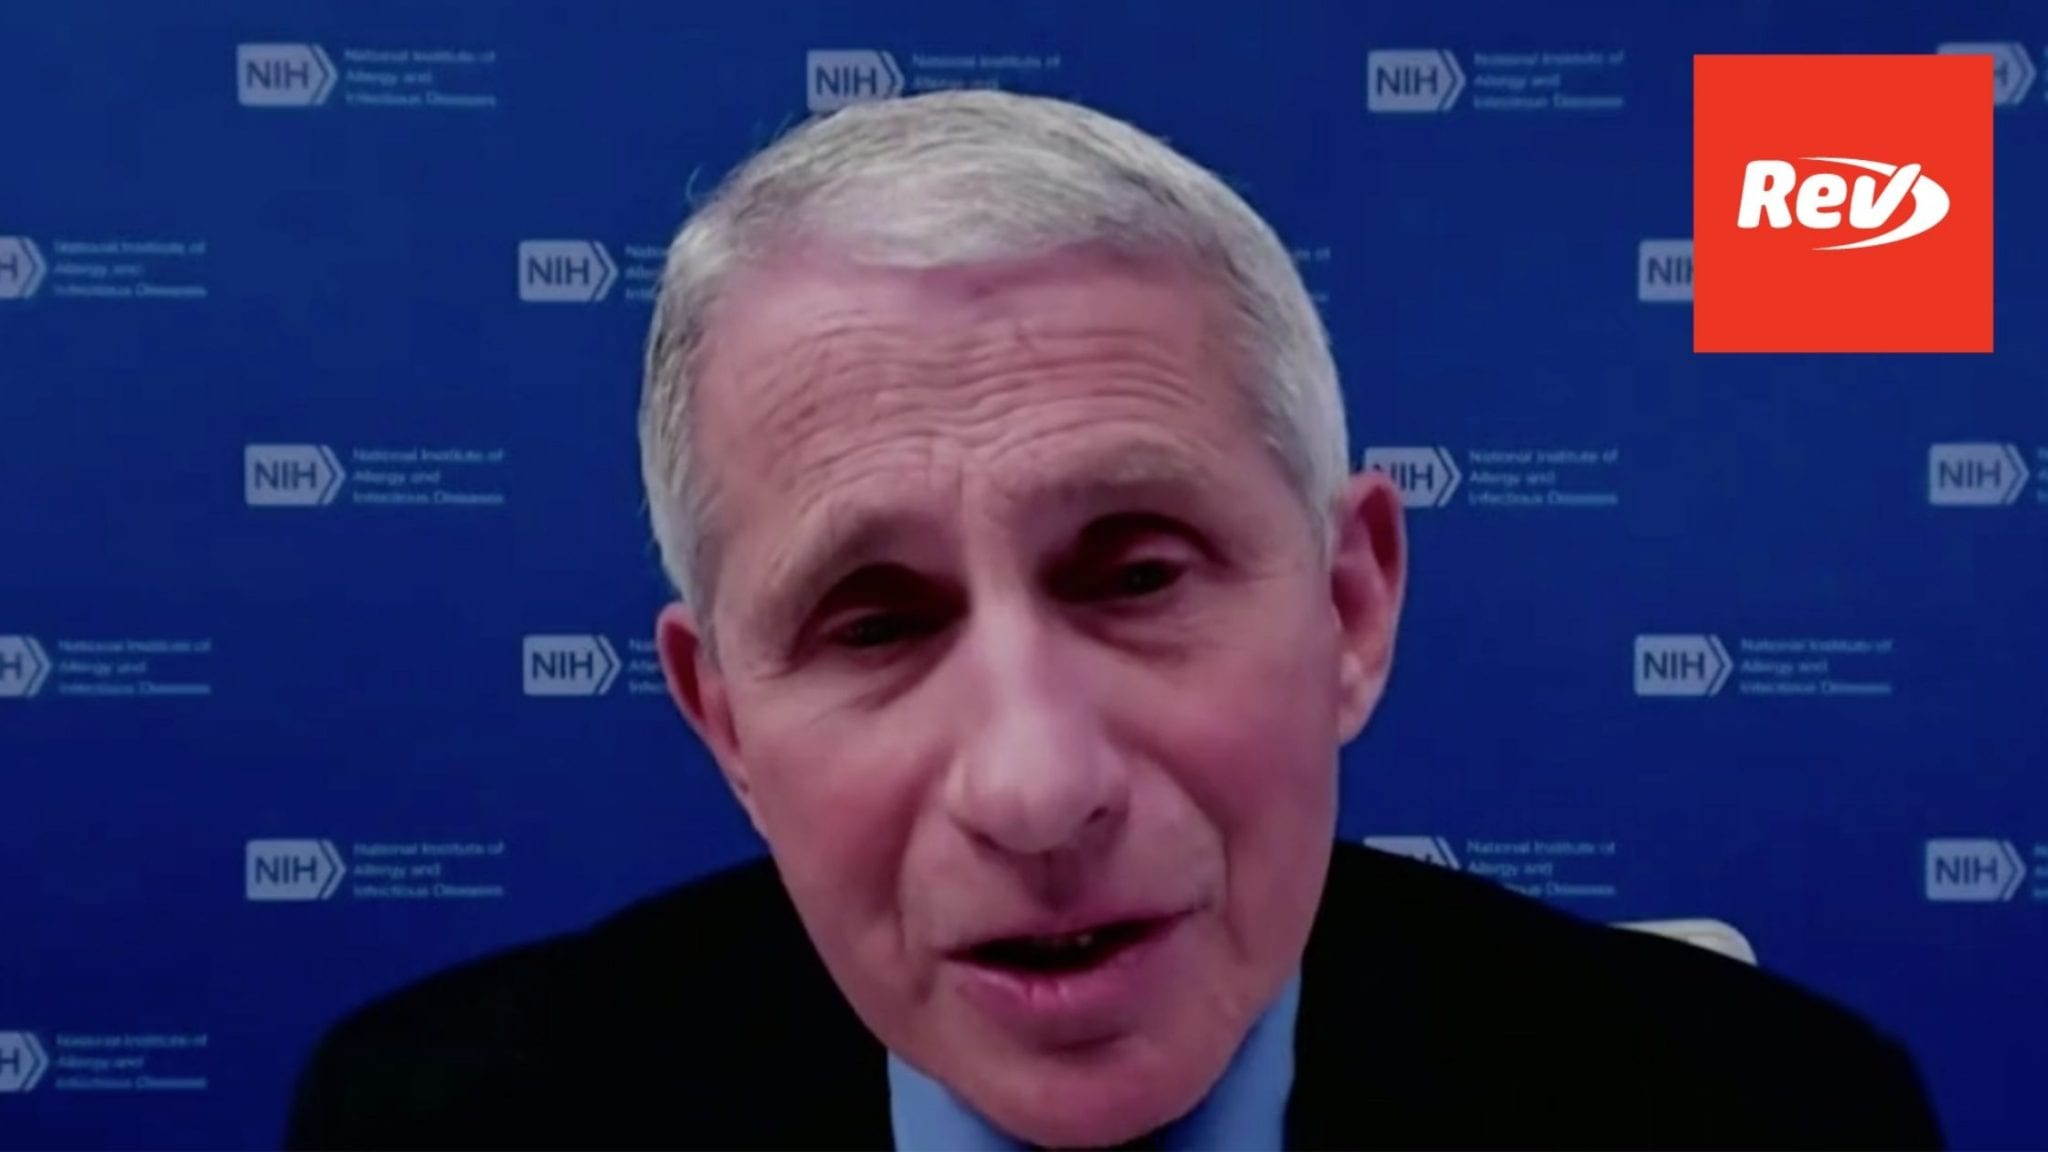 White House COVID-19 Response Team, Dr. Fauci Press Conference Transcript January 27